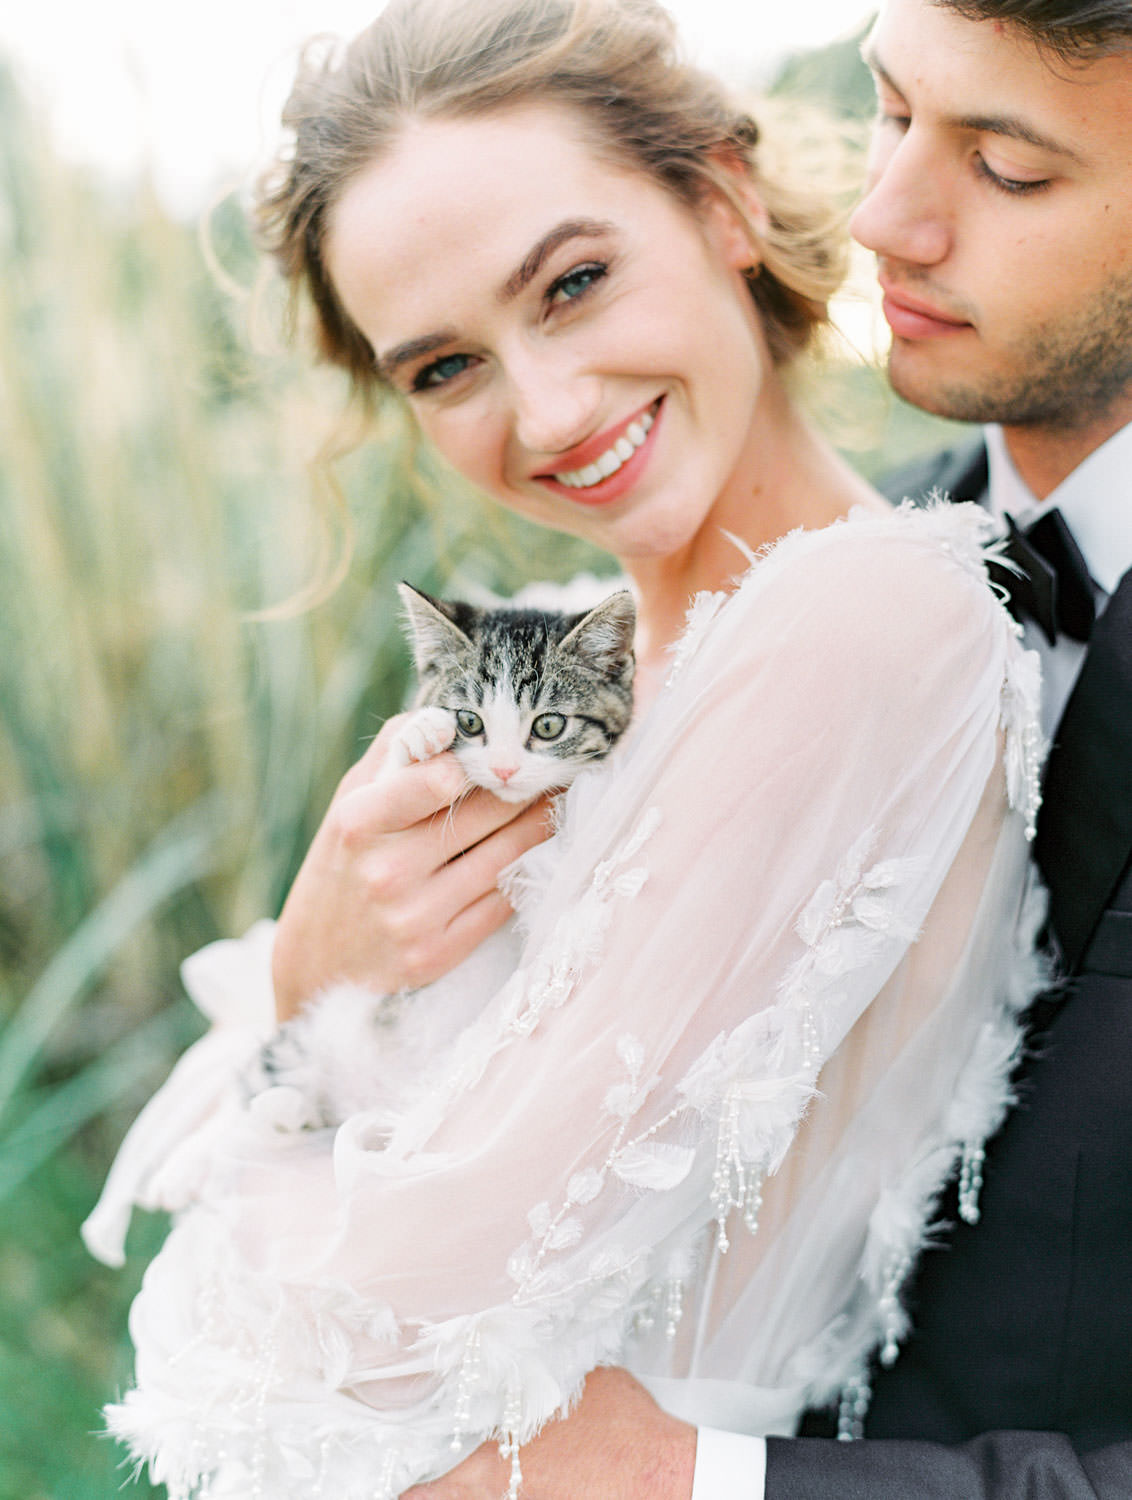 Bride in Marchesa Poppy gown and groom in The Black Tux holding a 7 week old kitten, Pampas Grass Wedding in San Diego on Film by Cavin Elizabeth Photography